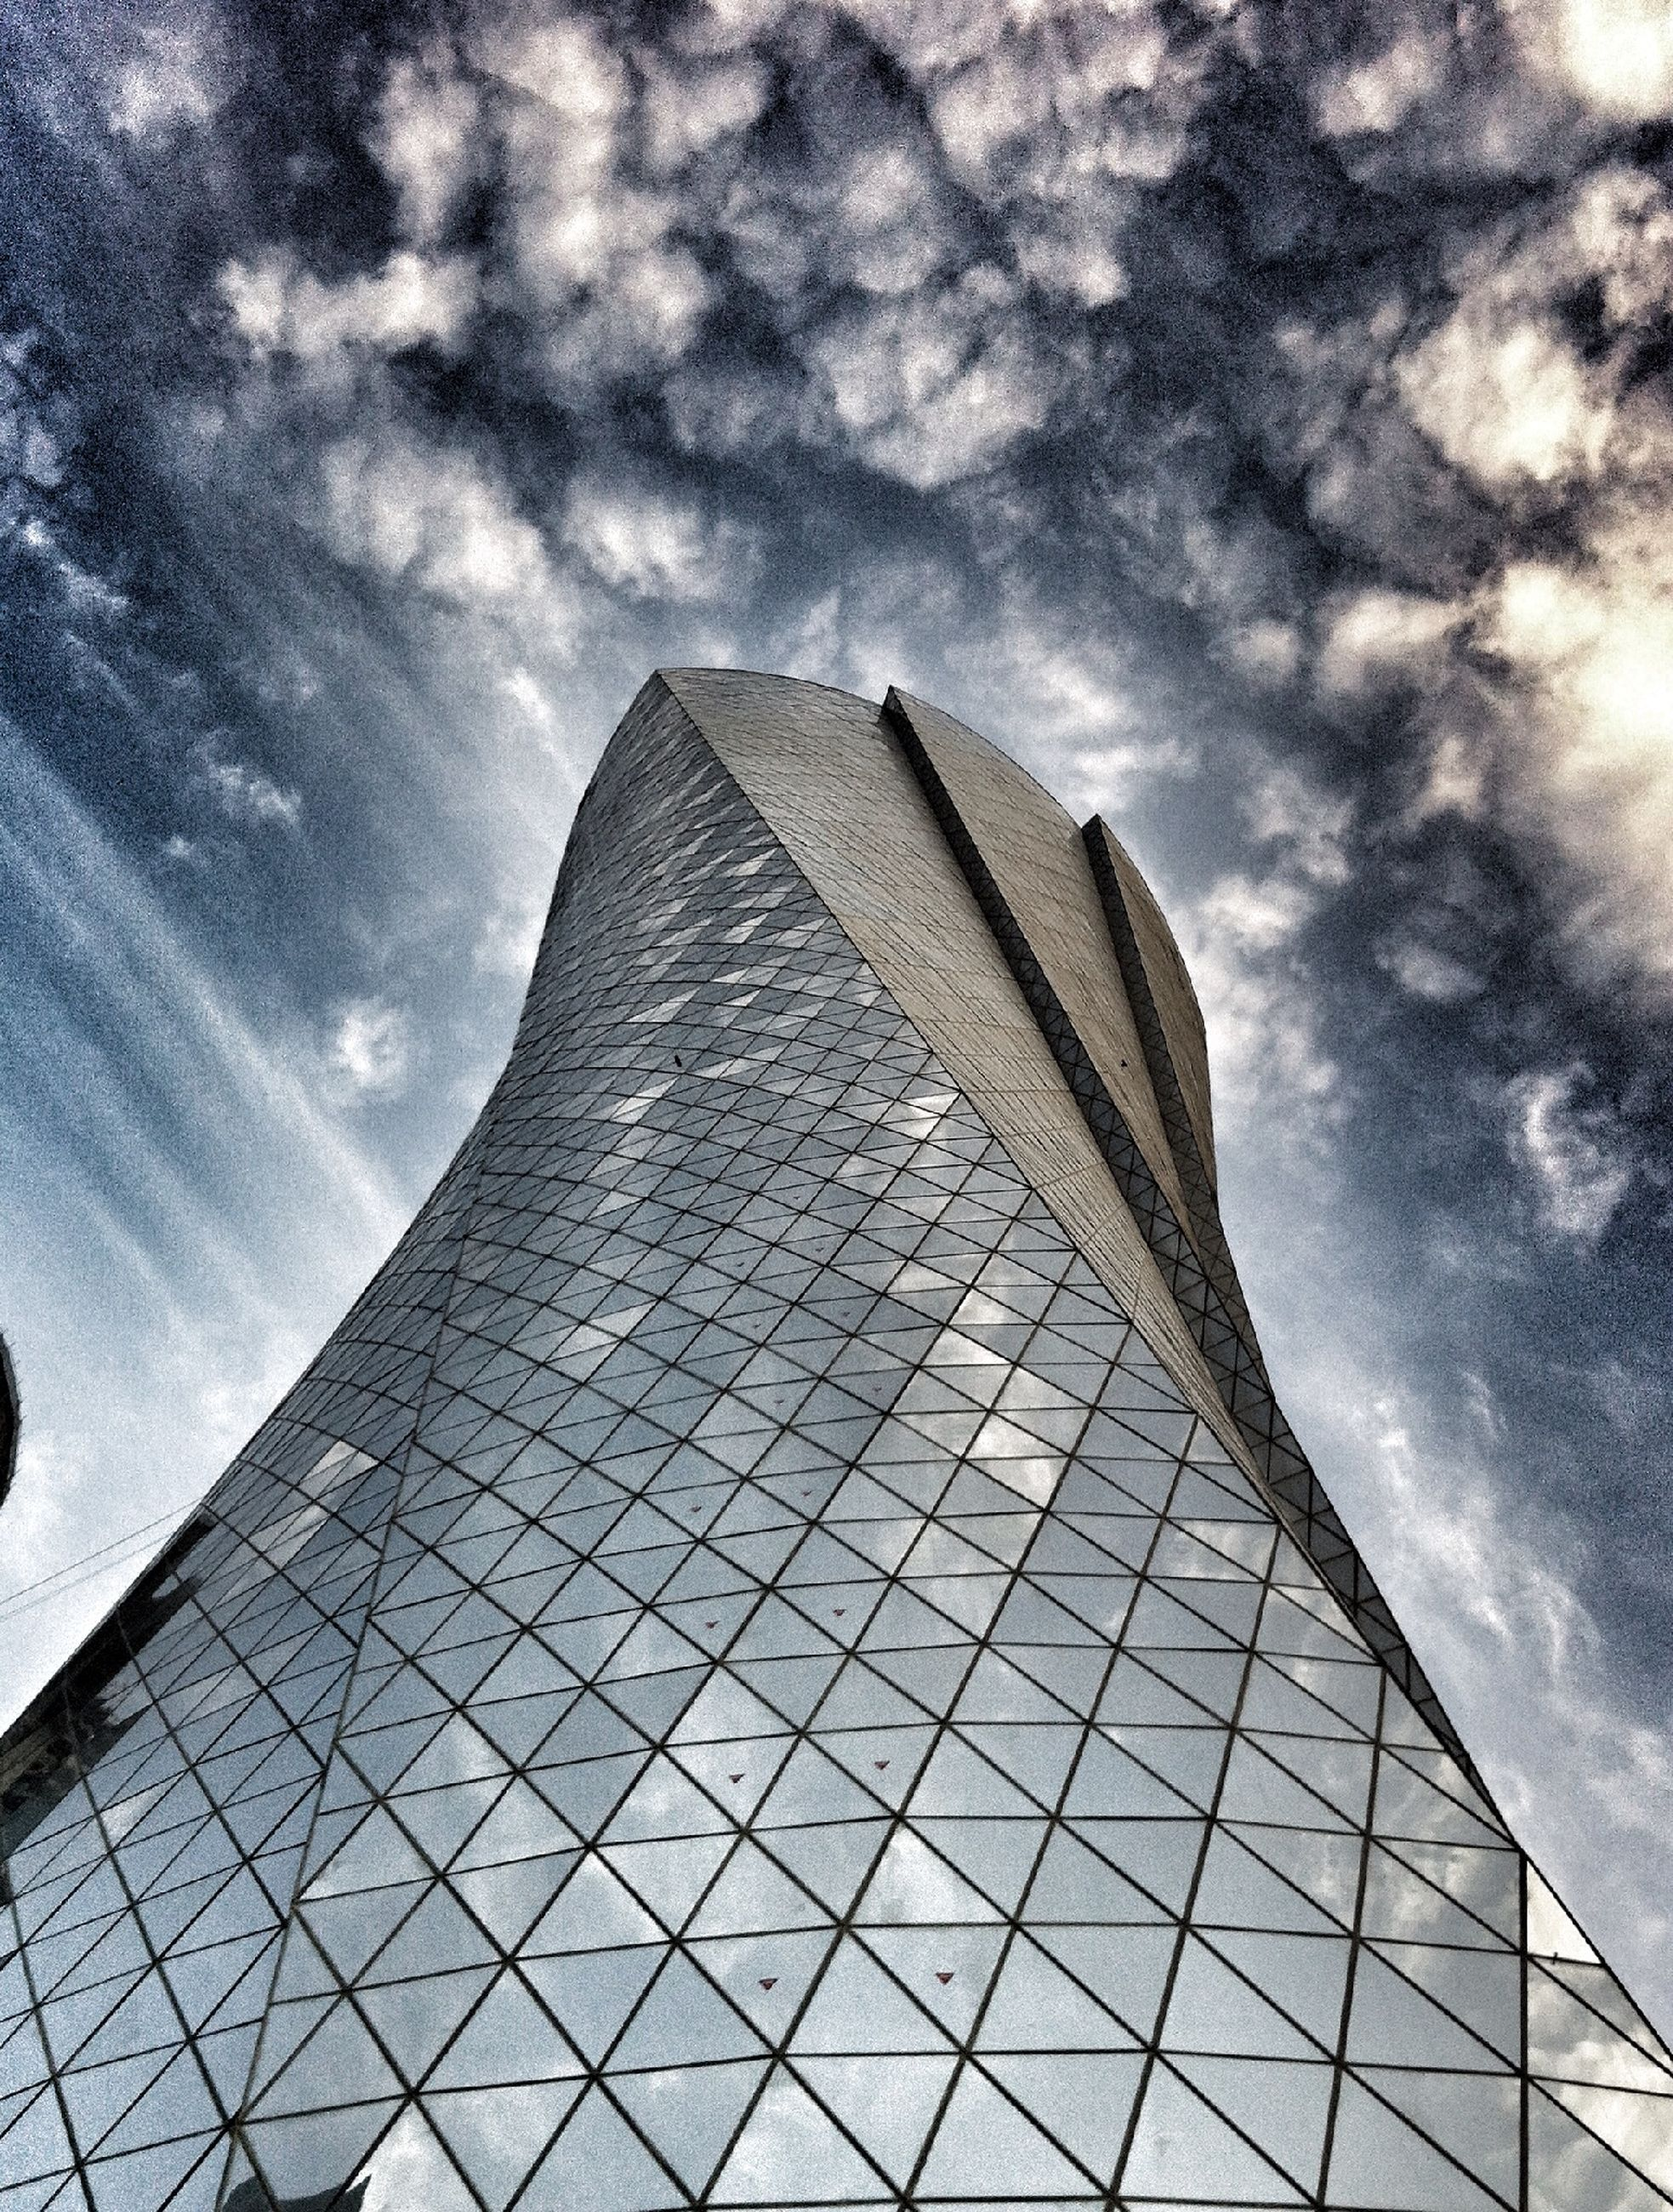 architecture, built structure, low angle view, building exterior, sky, cloud - sky, modern, cloudy, tower, tall - high, cloud, office building, glass - material, city, building, architectural feature, skyscraper, day, reflection, outdoors